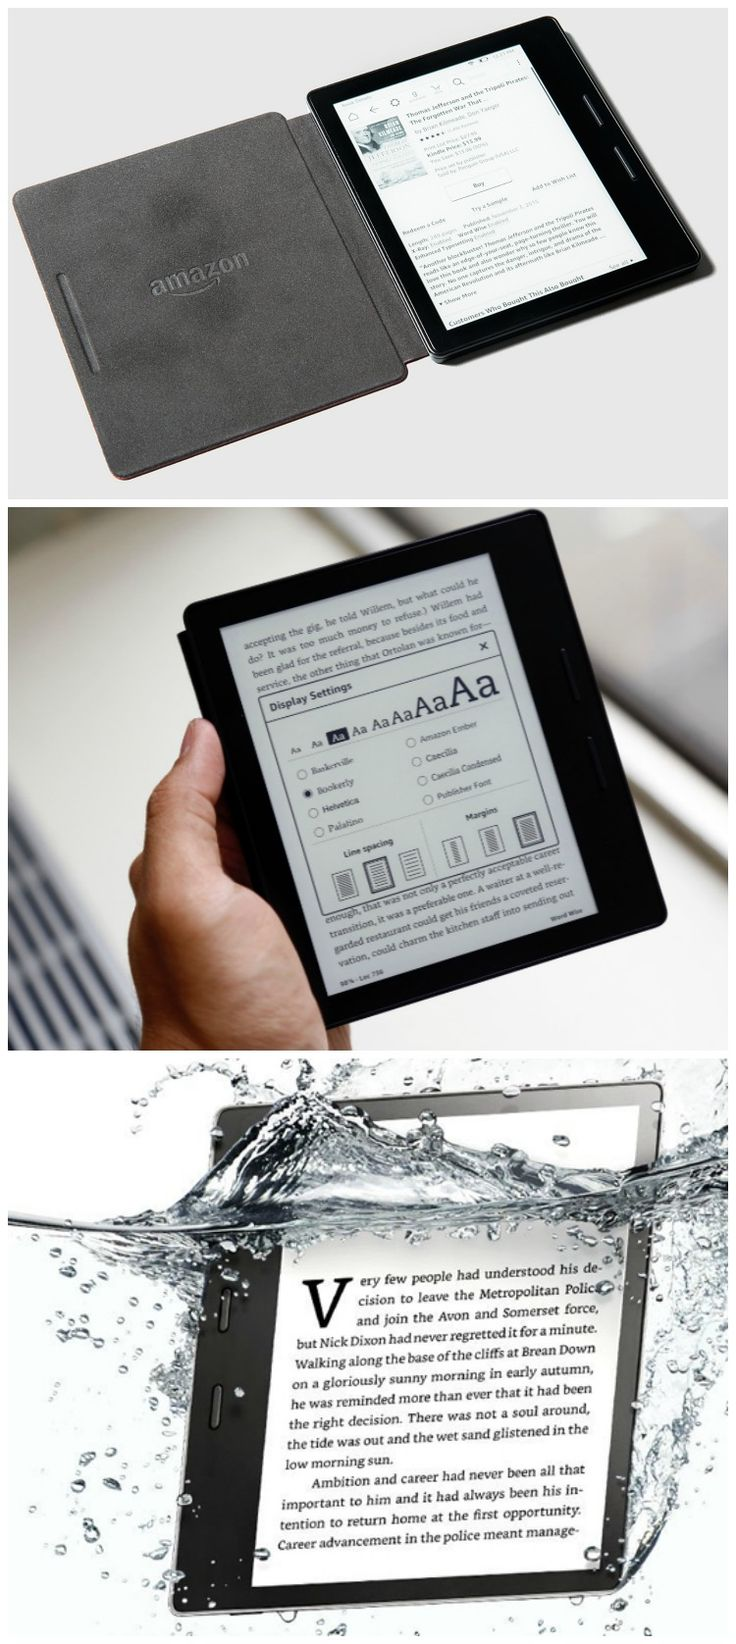 Read in the bath tub with the new waterproof Kindle Oasis. #affiliate #kindle